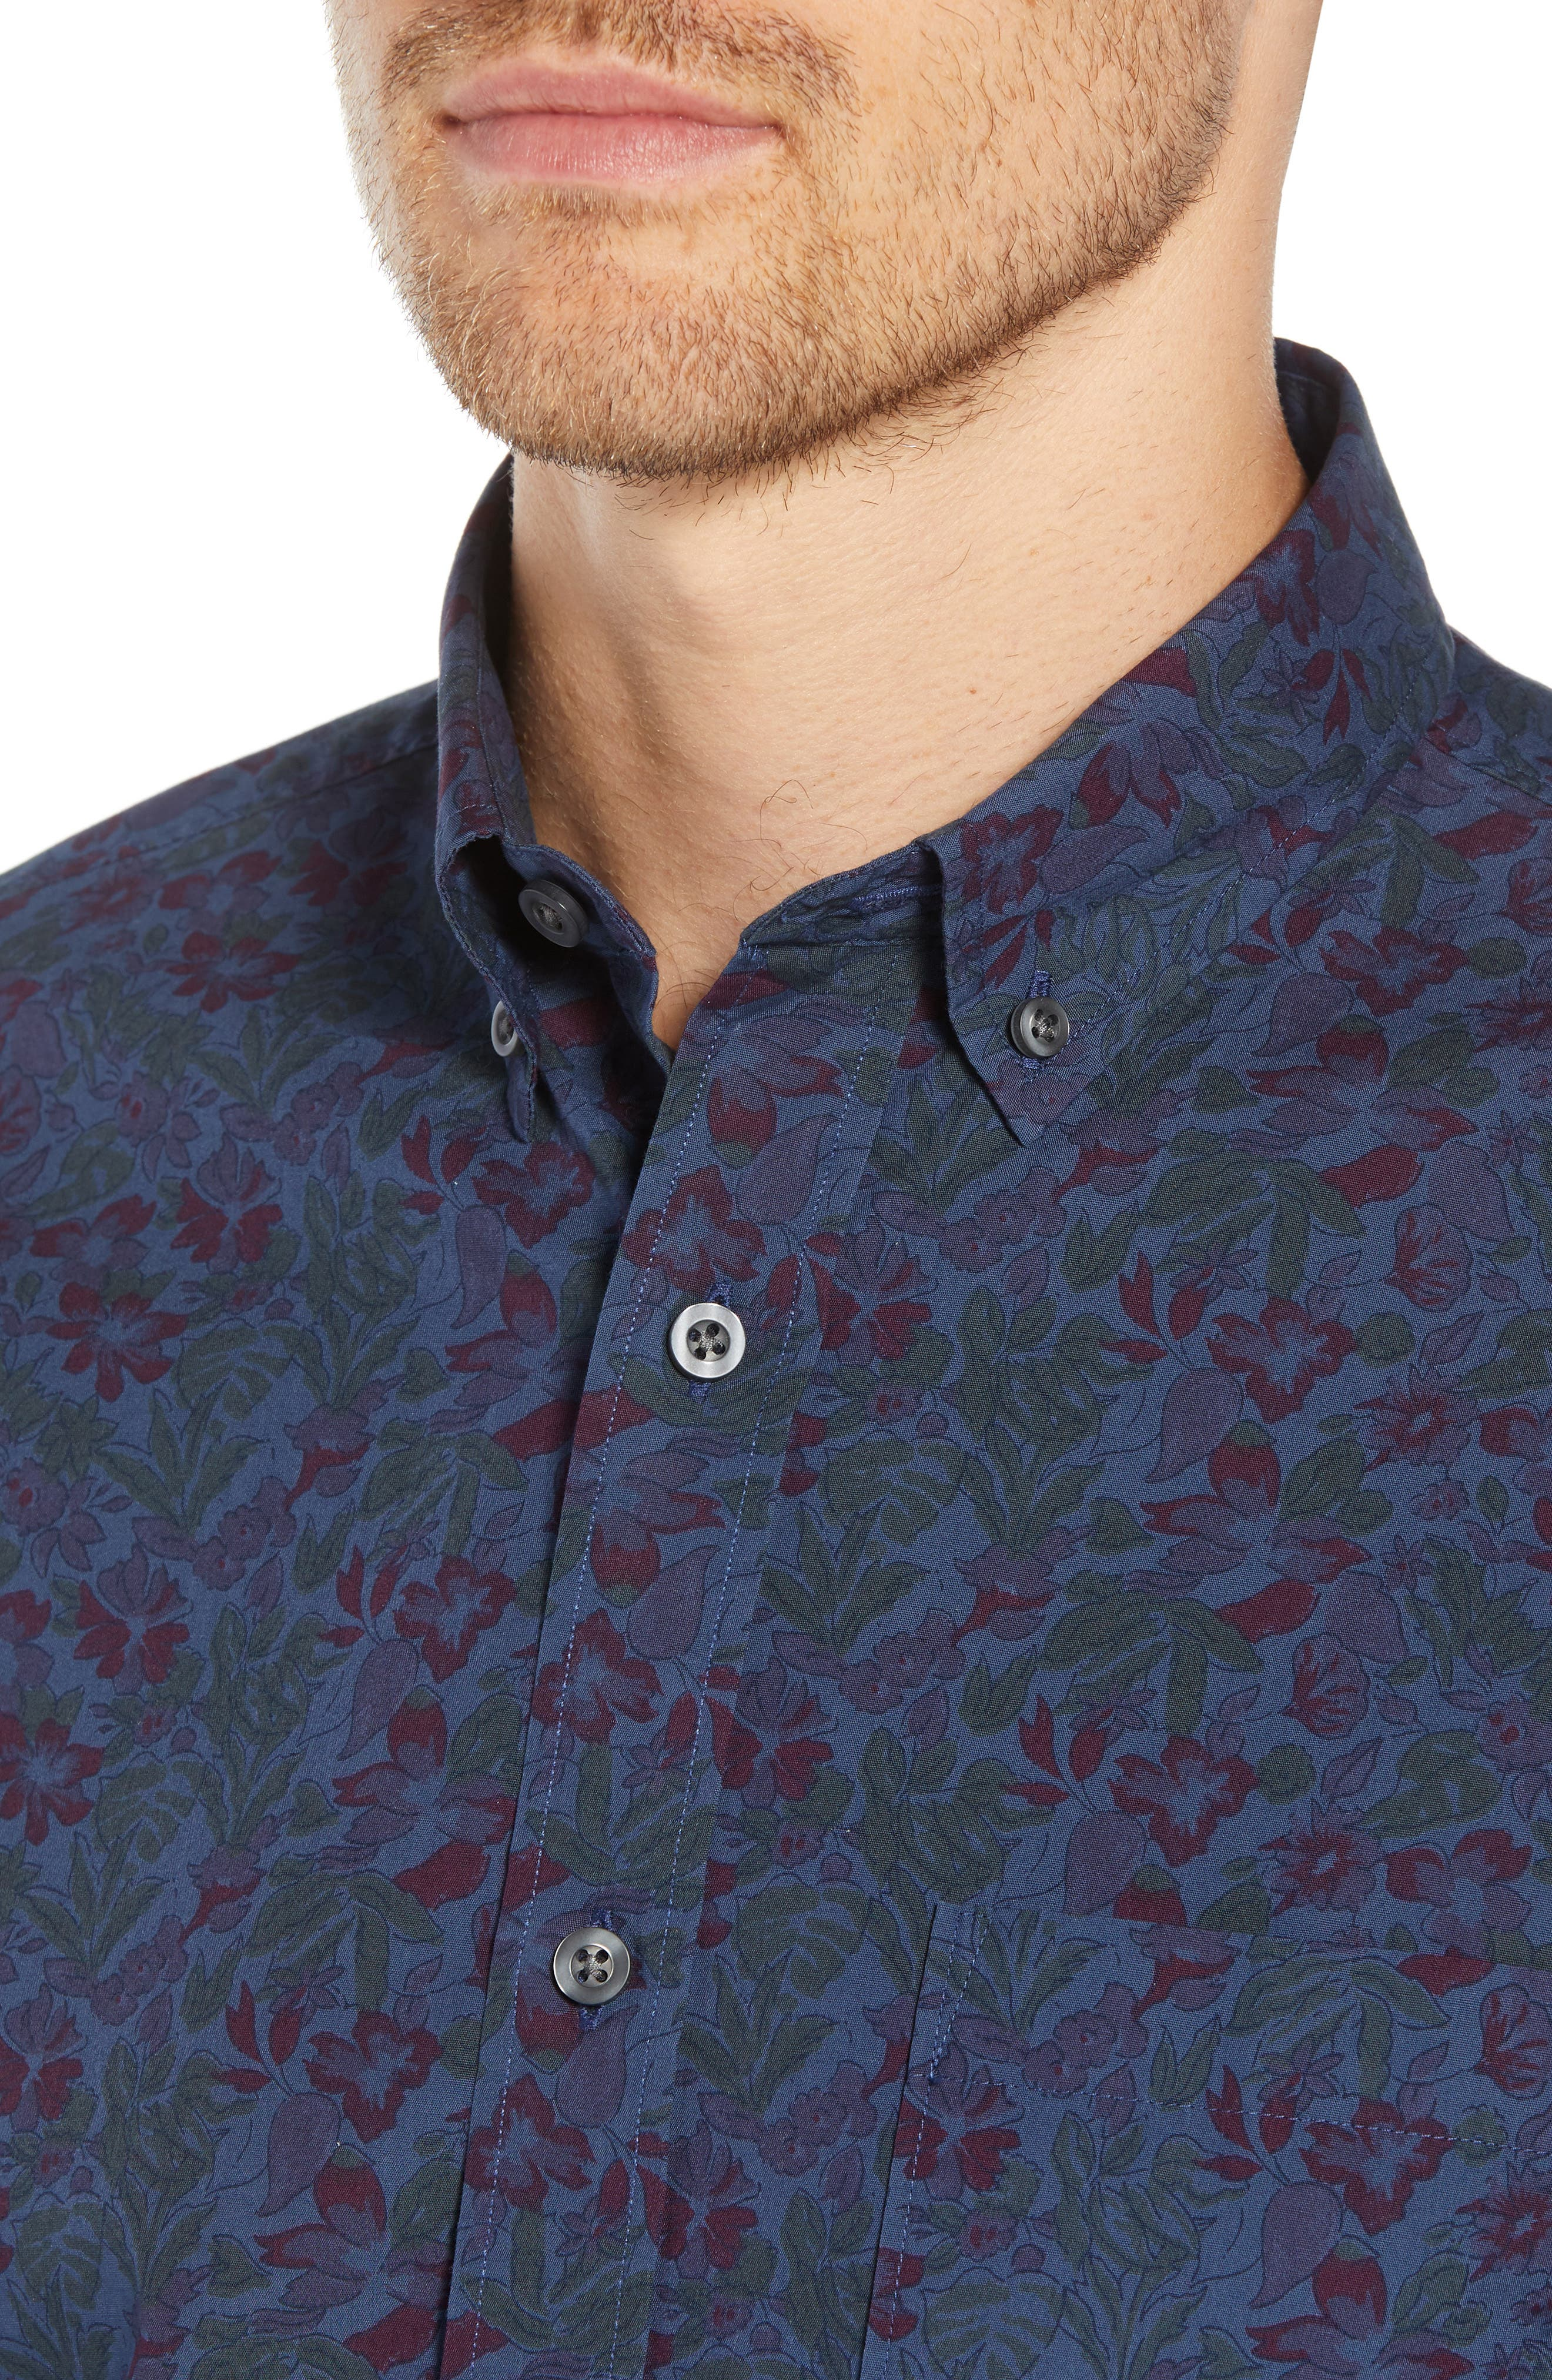 Trim Fit Floral Print Sport Shirt,                             Alternate thumbnail 4, color,                             NAVY TROPICAL CHAMBRAY PRINT